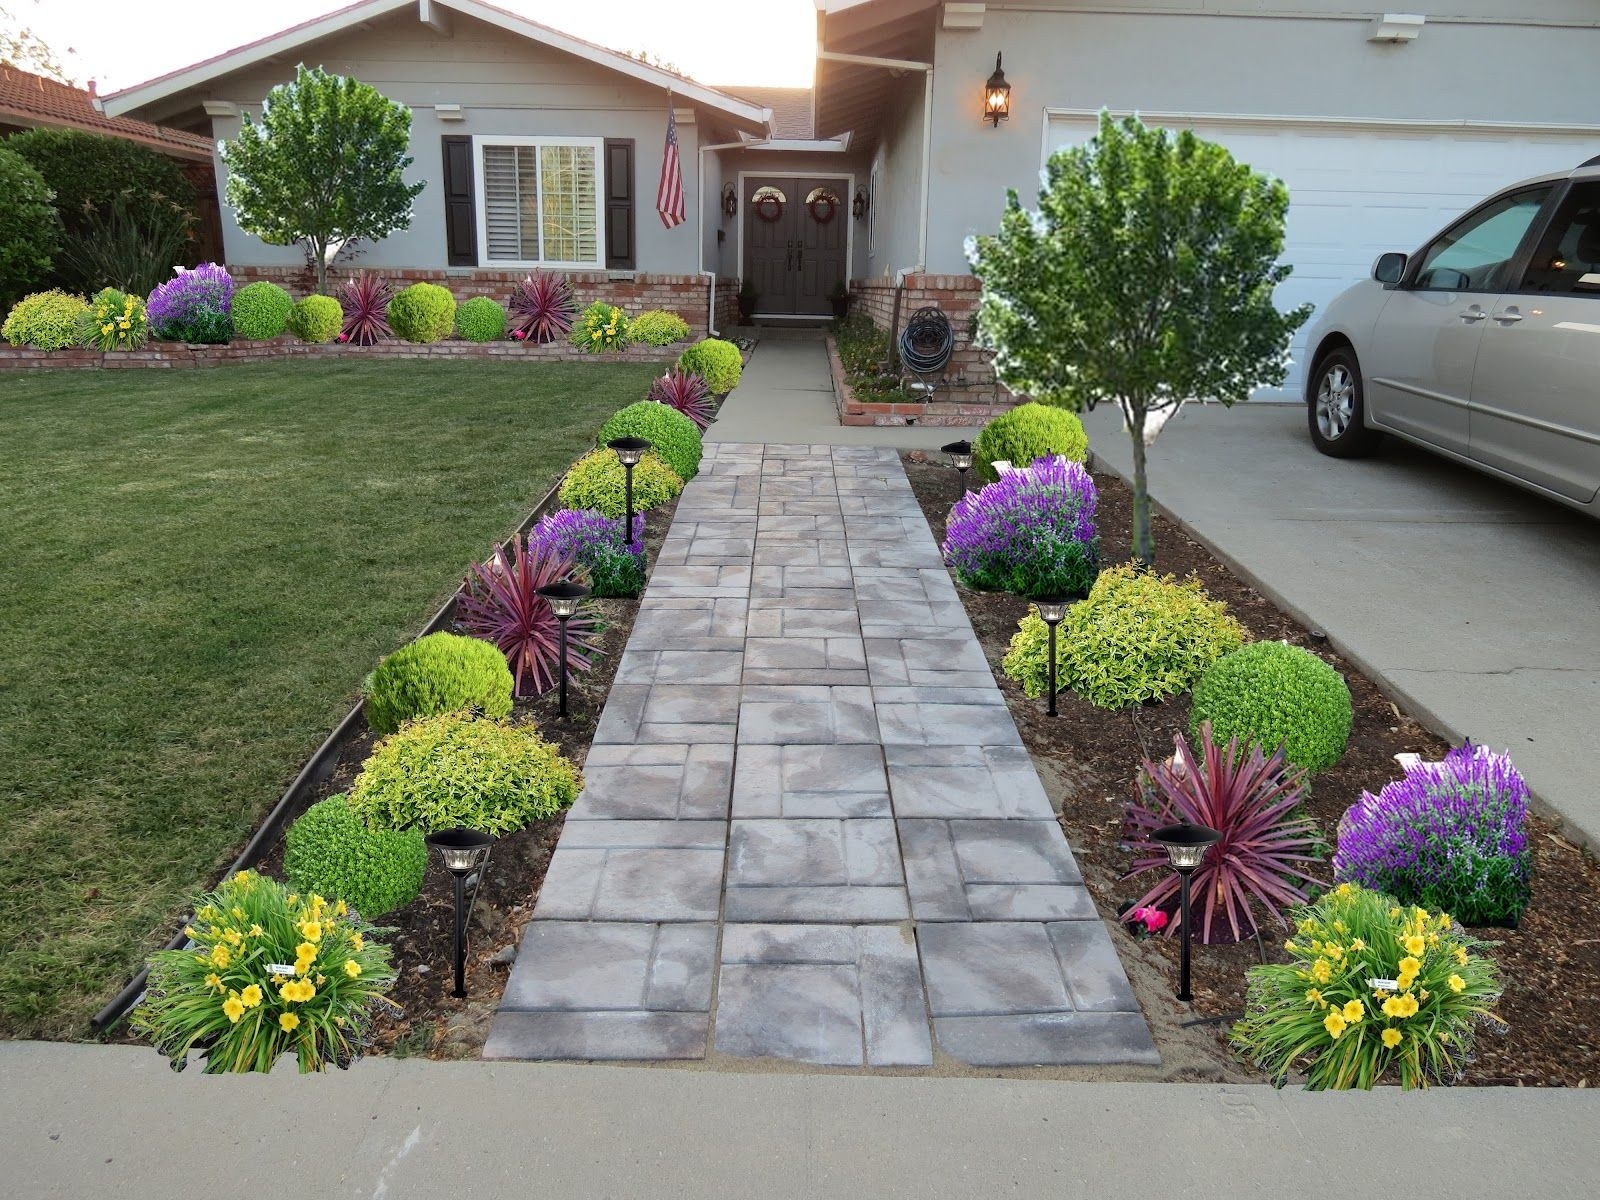 Landscaping Ideas Down A Front Entrance Sidewalk